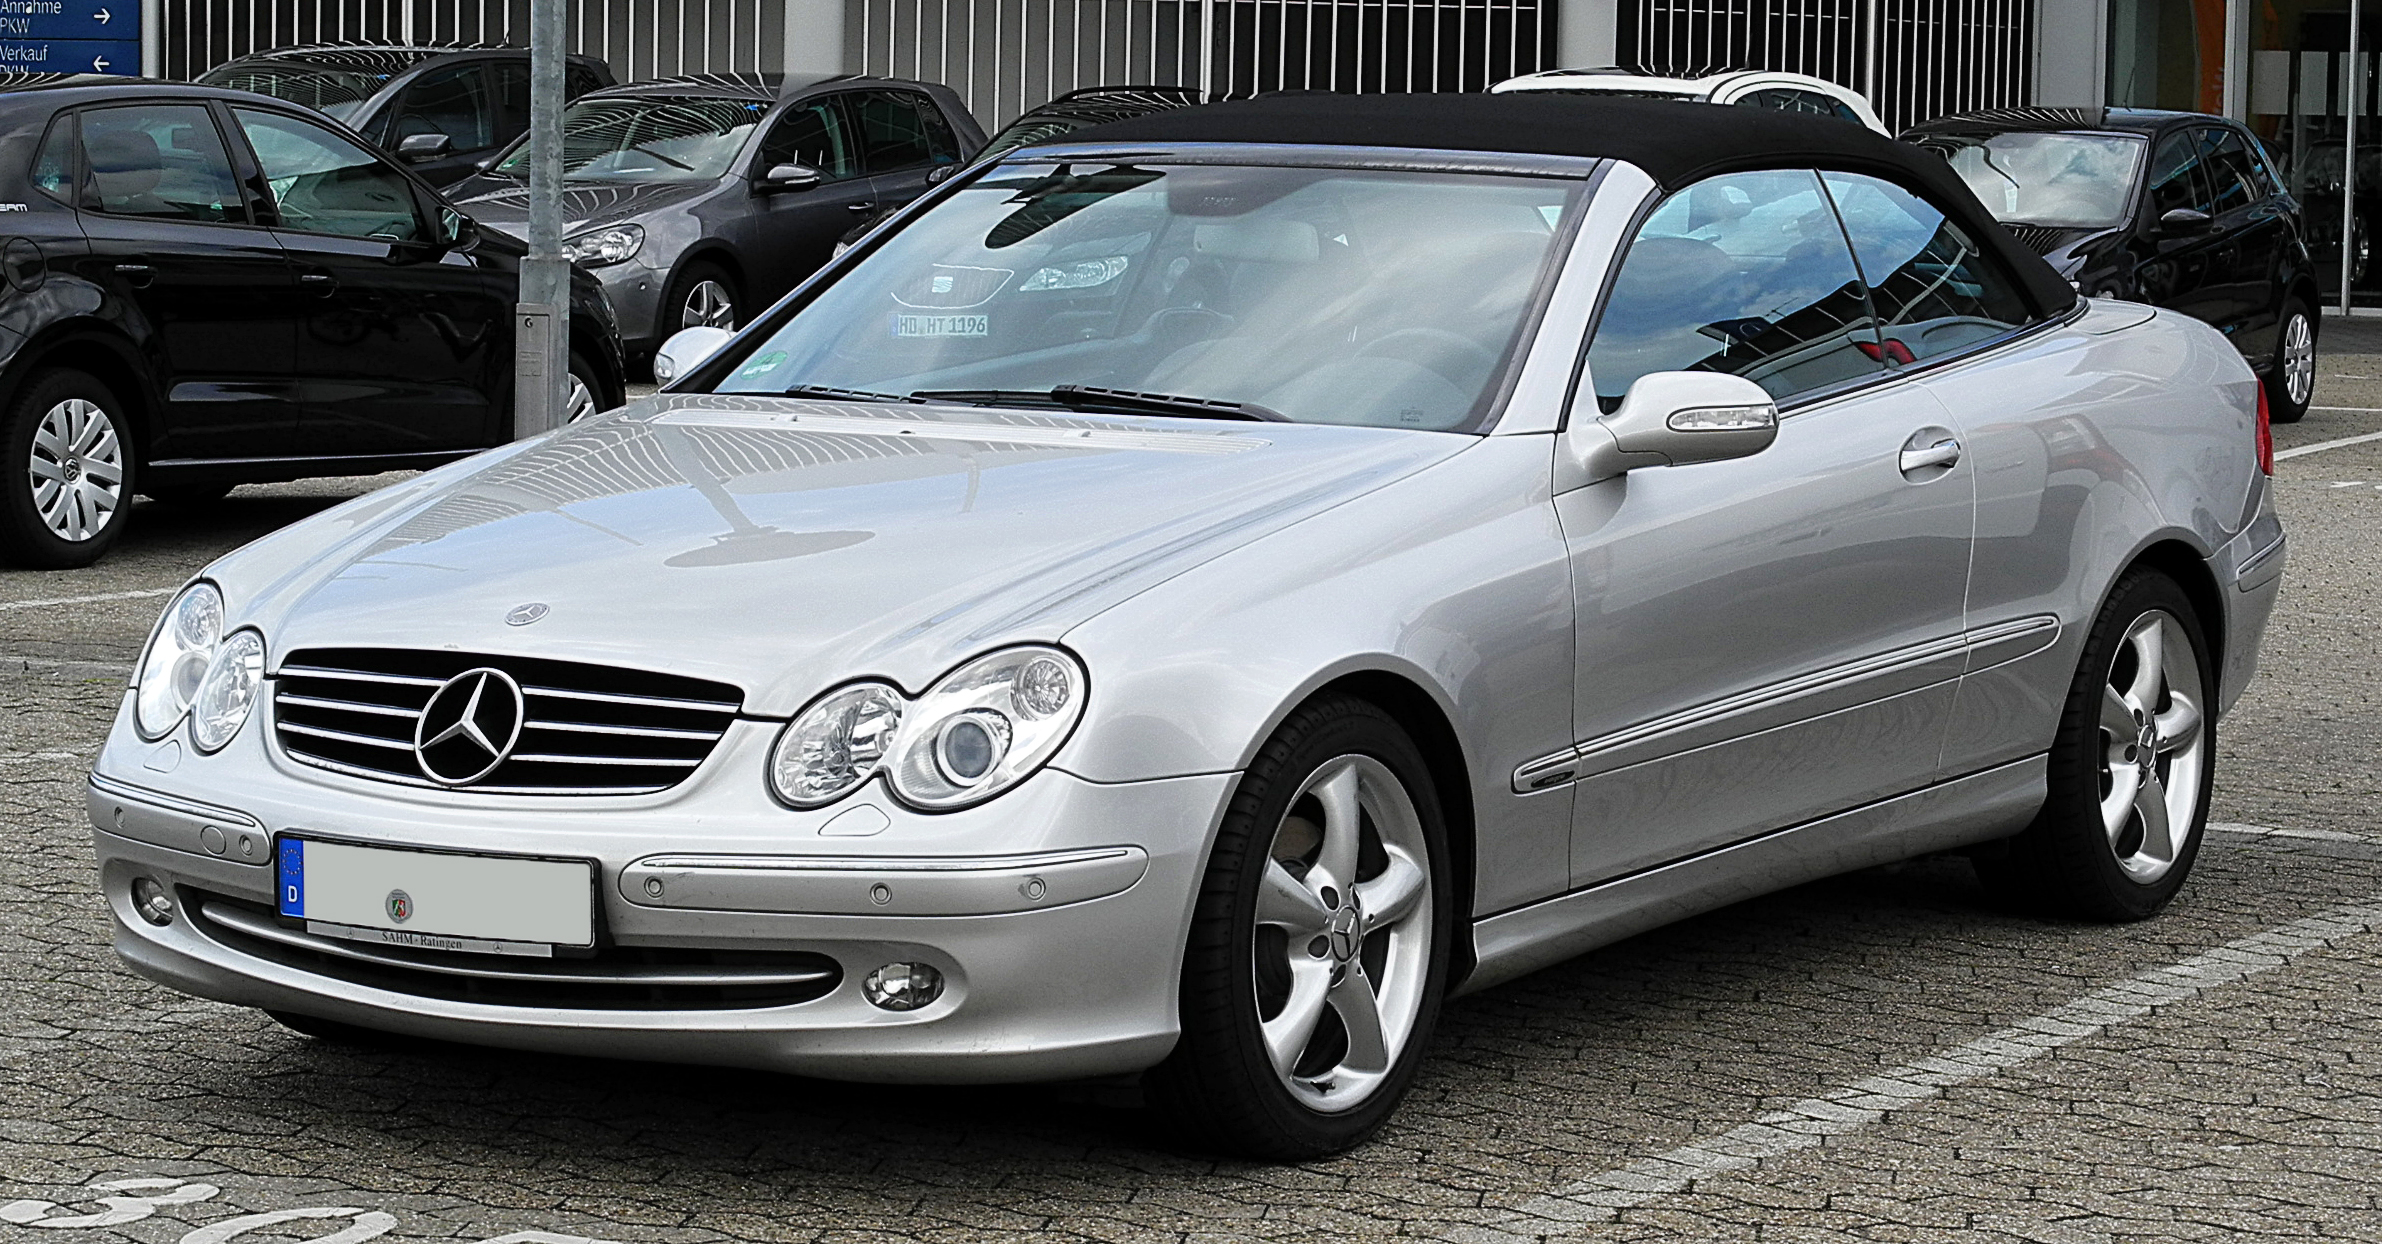 2019 Mercedes Benz CLK320 Cabriolet photo - 3